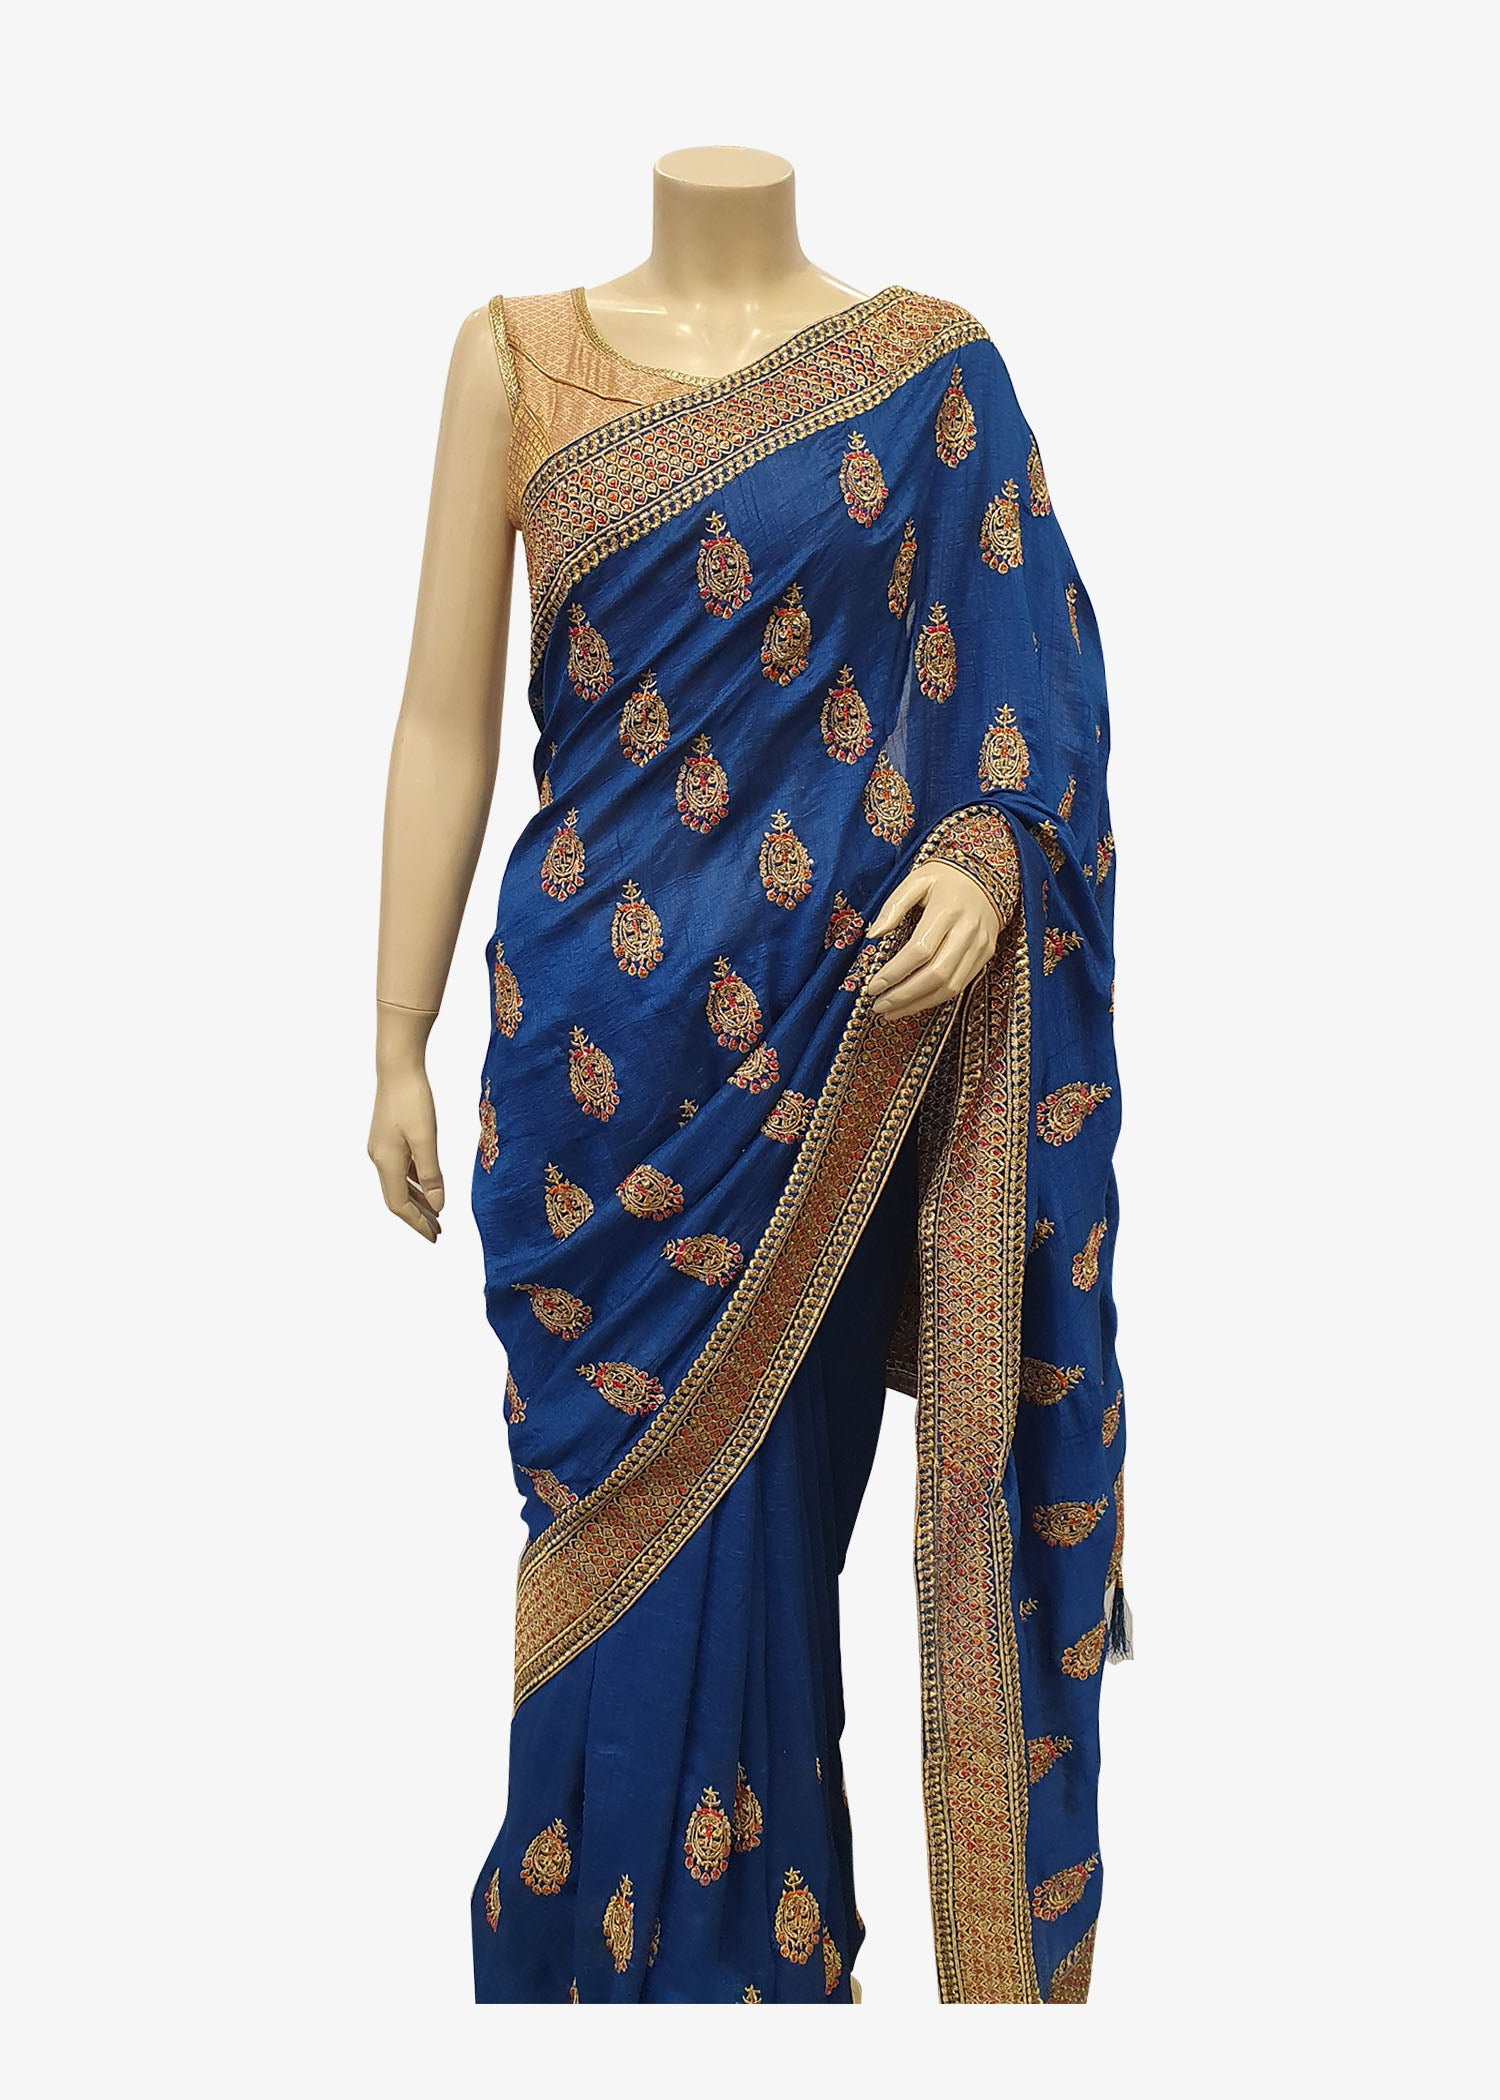 Teal Blue Art Silk Saree With Gold Resham Work All Over